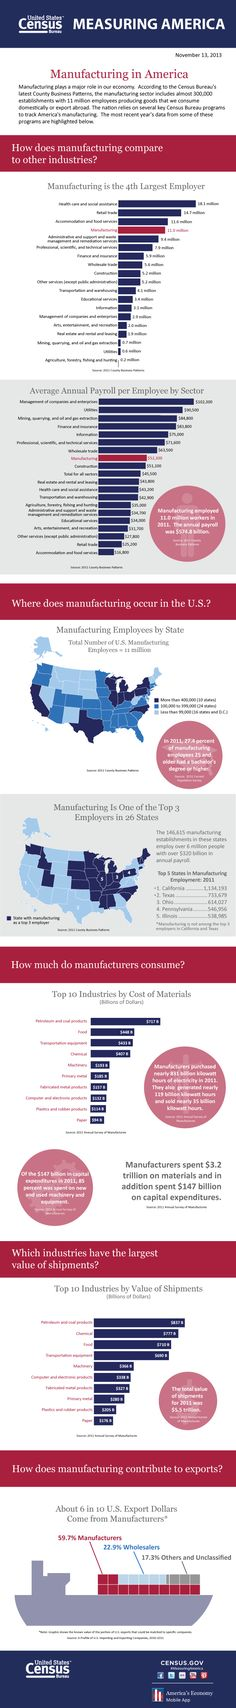 The #manufacturing sector includes almost 300,000 establishments with 11 million employees producing goods that we consume domestically or export abroad.